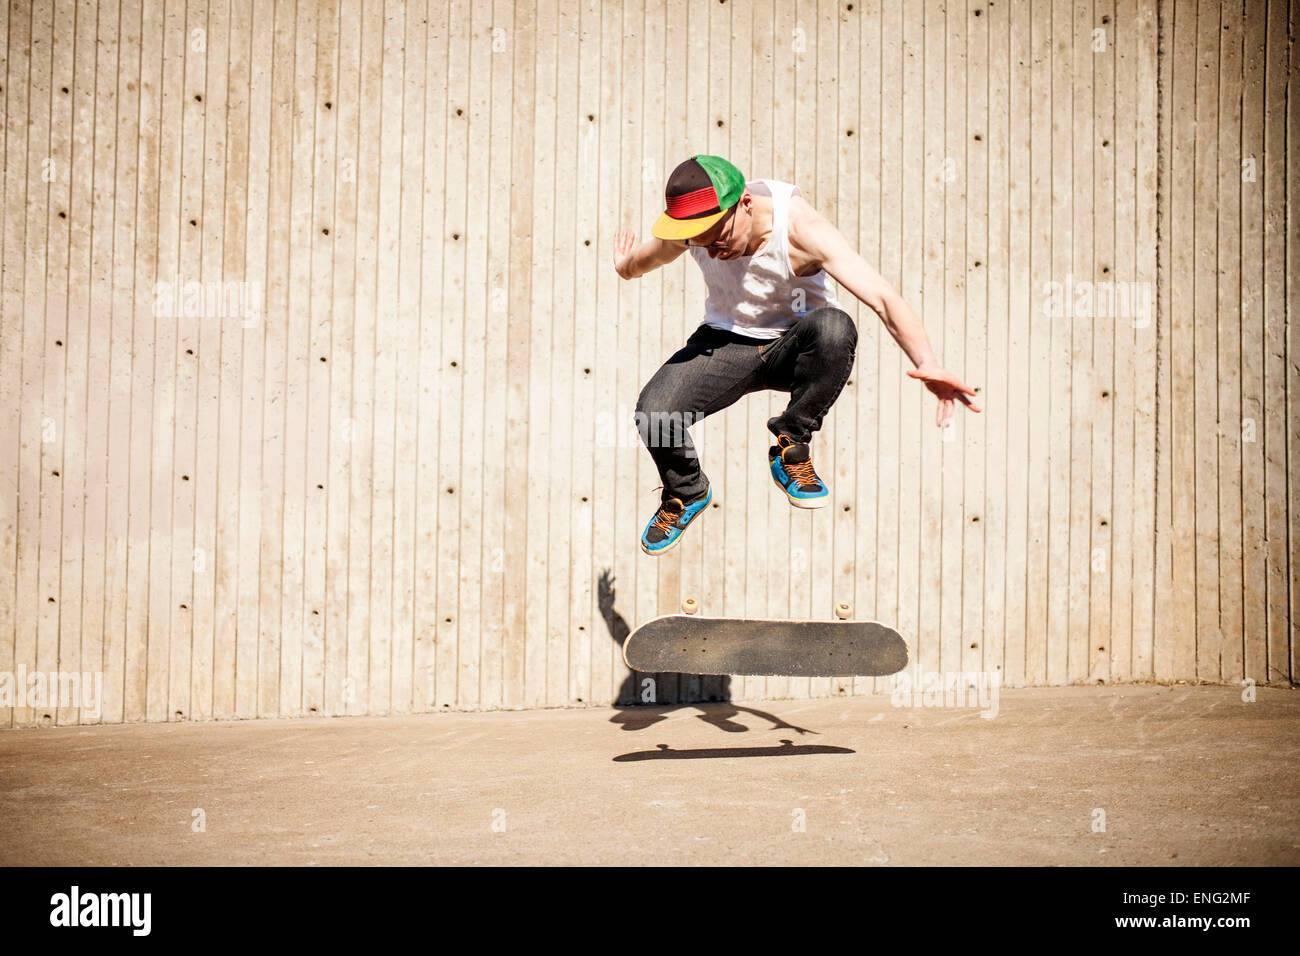 Caucasian man doing skate trick near wooden wall - Stock Image